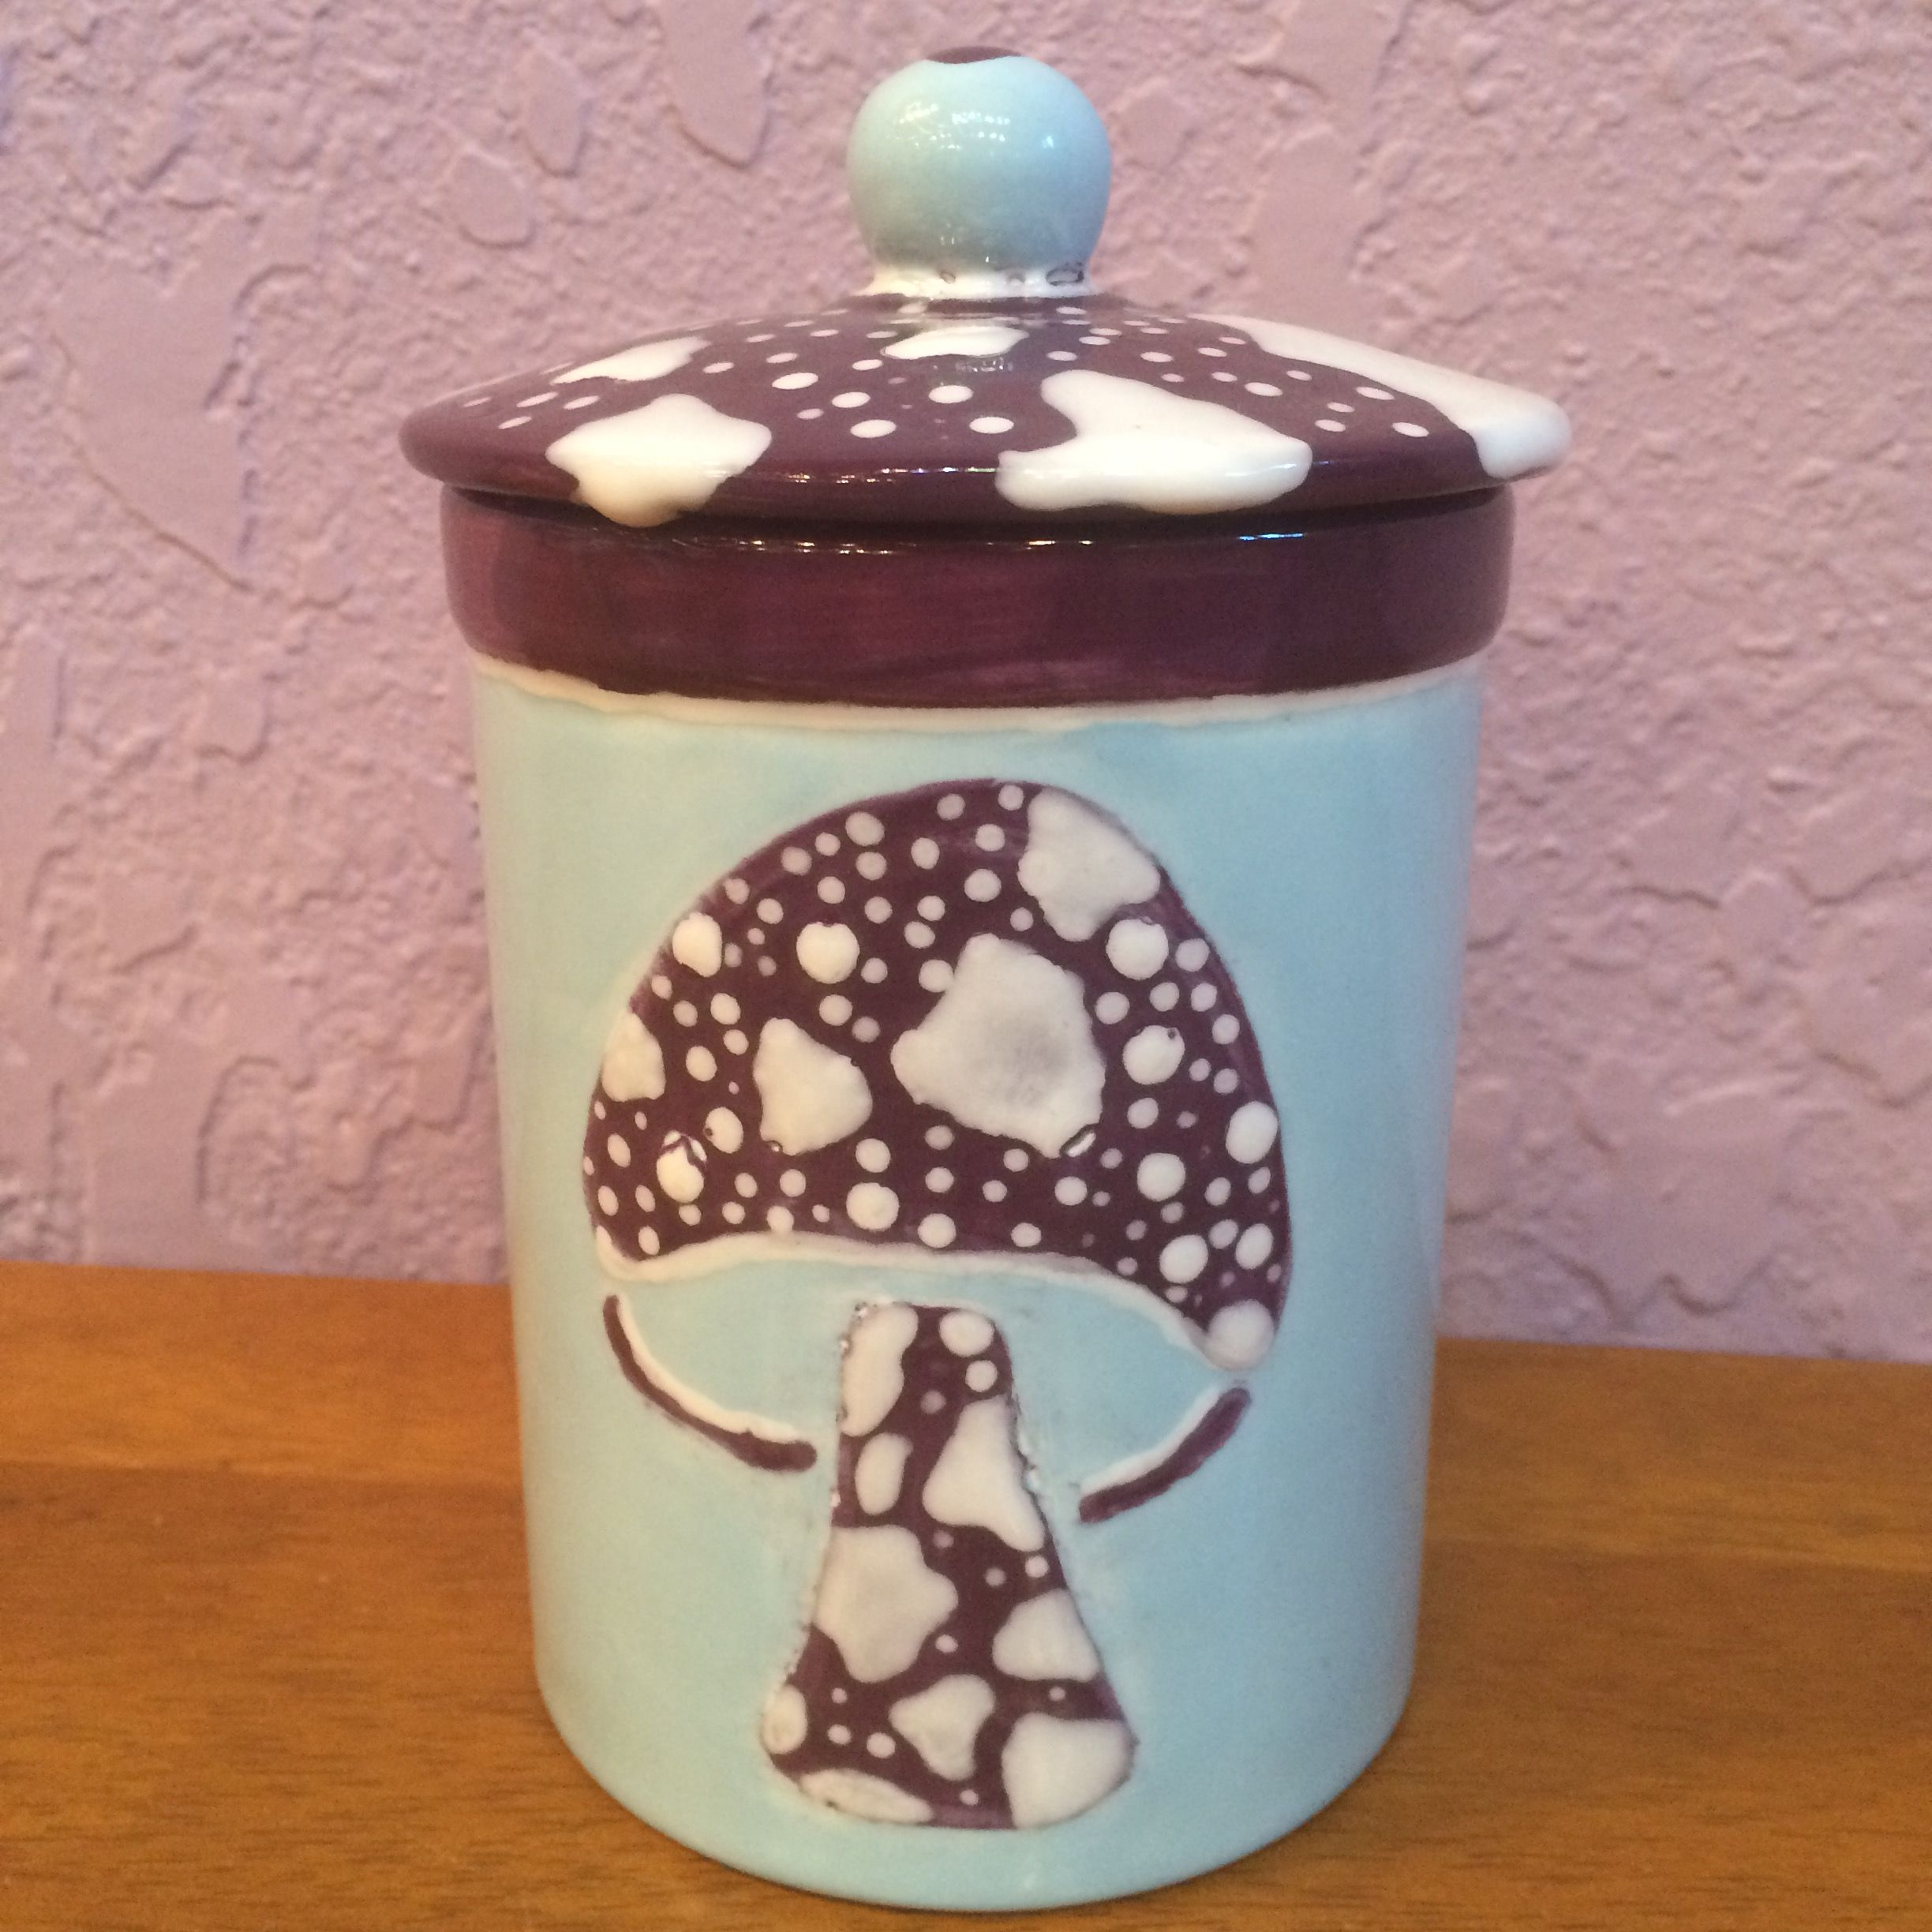 Jar Container Design Your Own Pottery Ceramic Home Decor